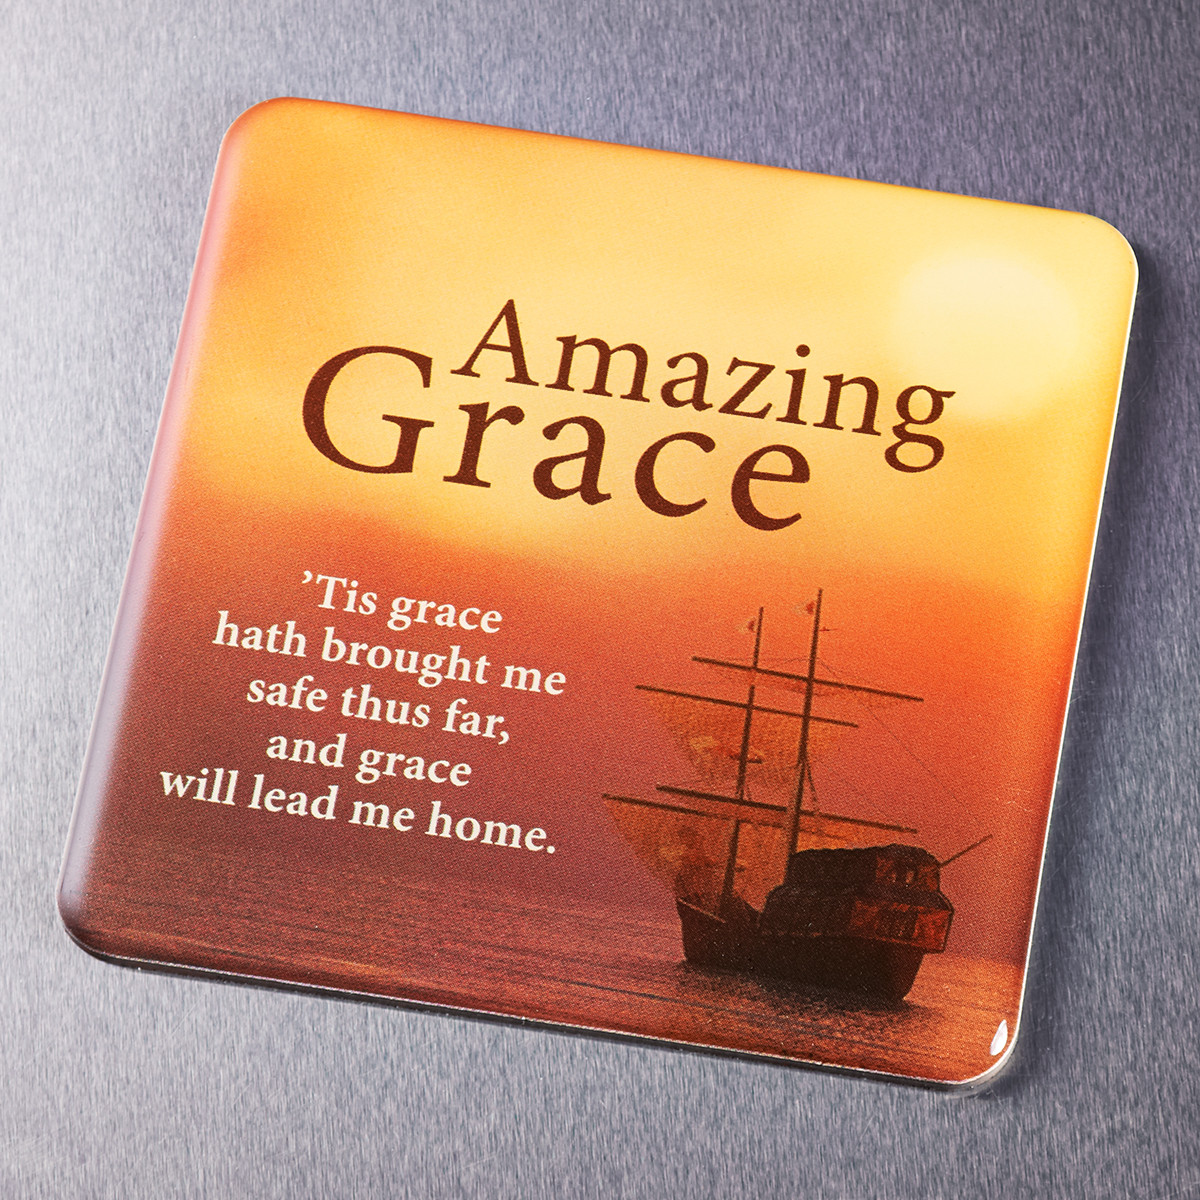 Amazing Grace: Magnet: Amazing Grace